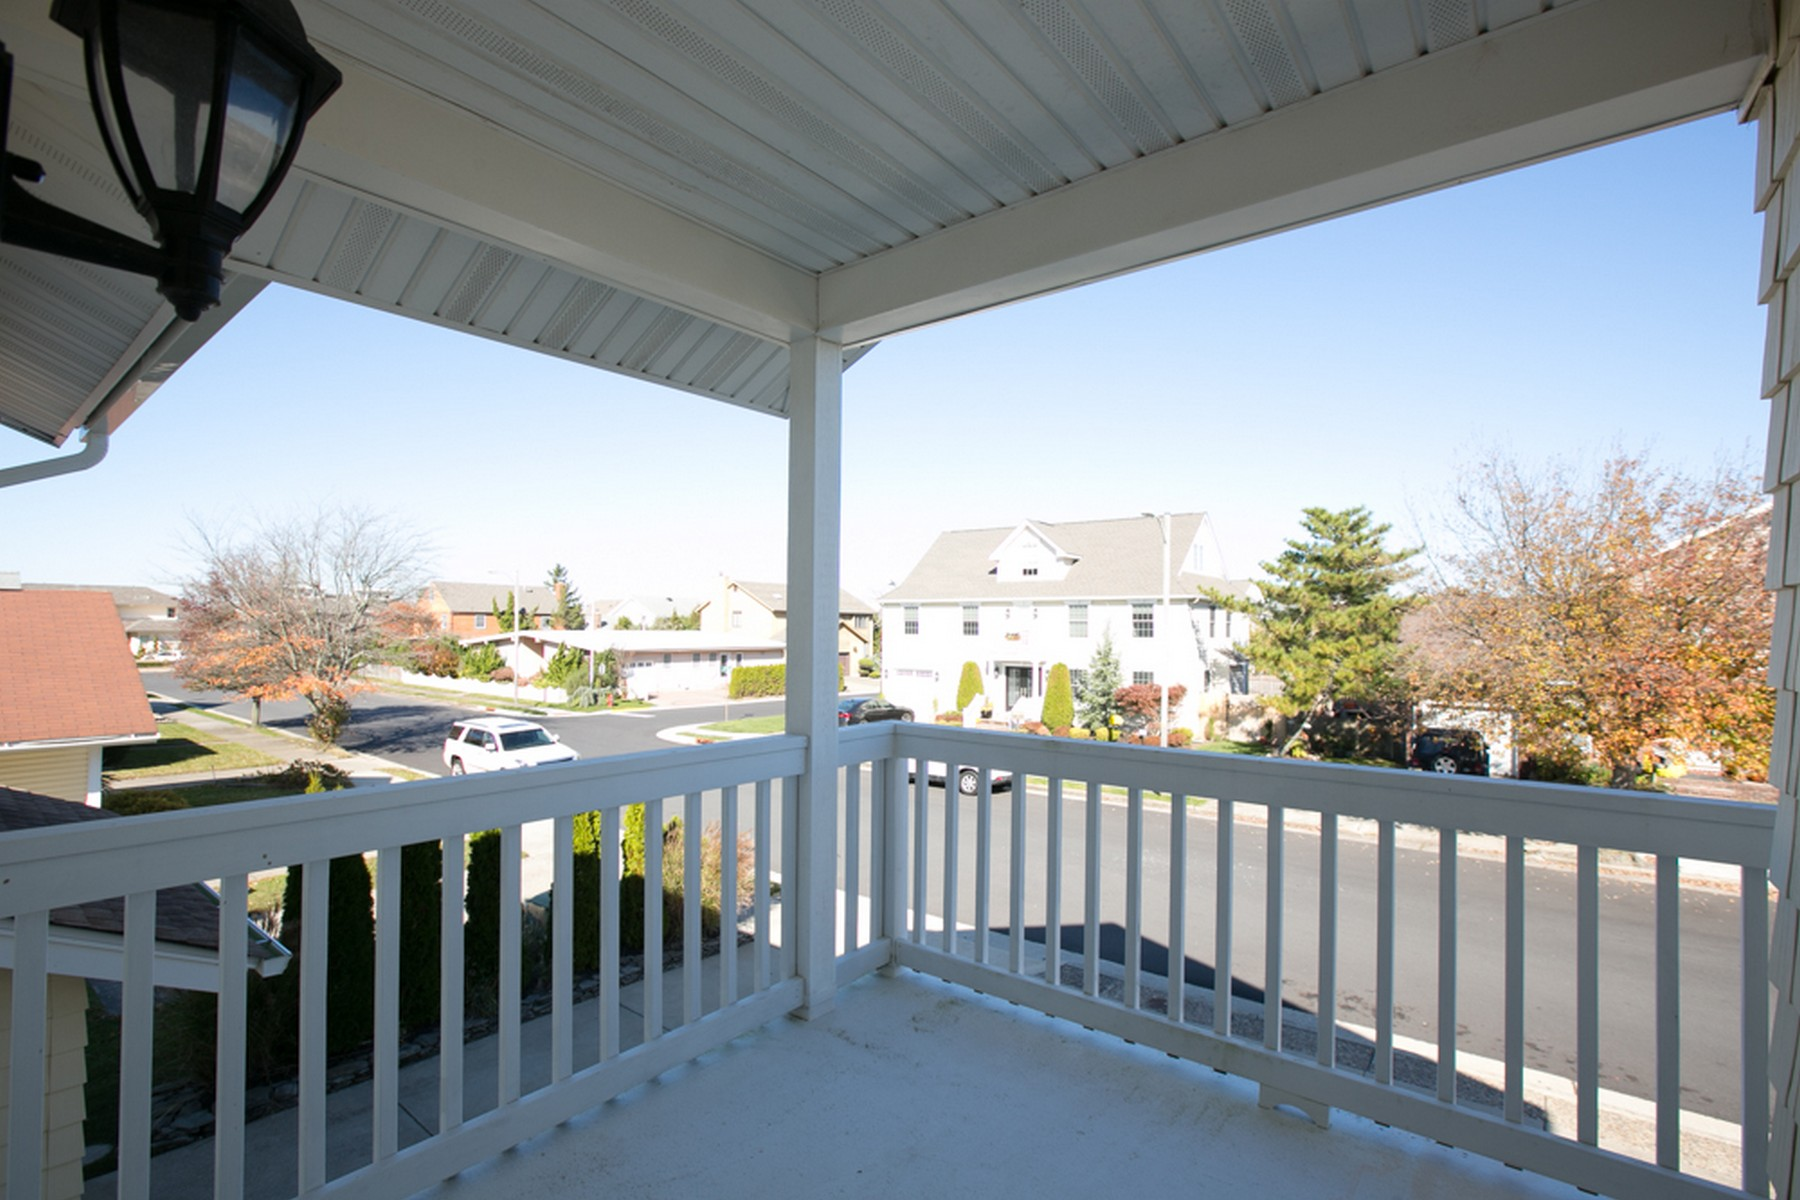 Additional photo for property listing at 614 N Huntington 614 N Huntington Margate, New Jersey 08402 United States